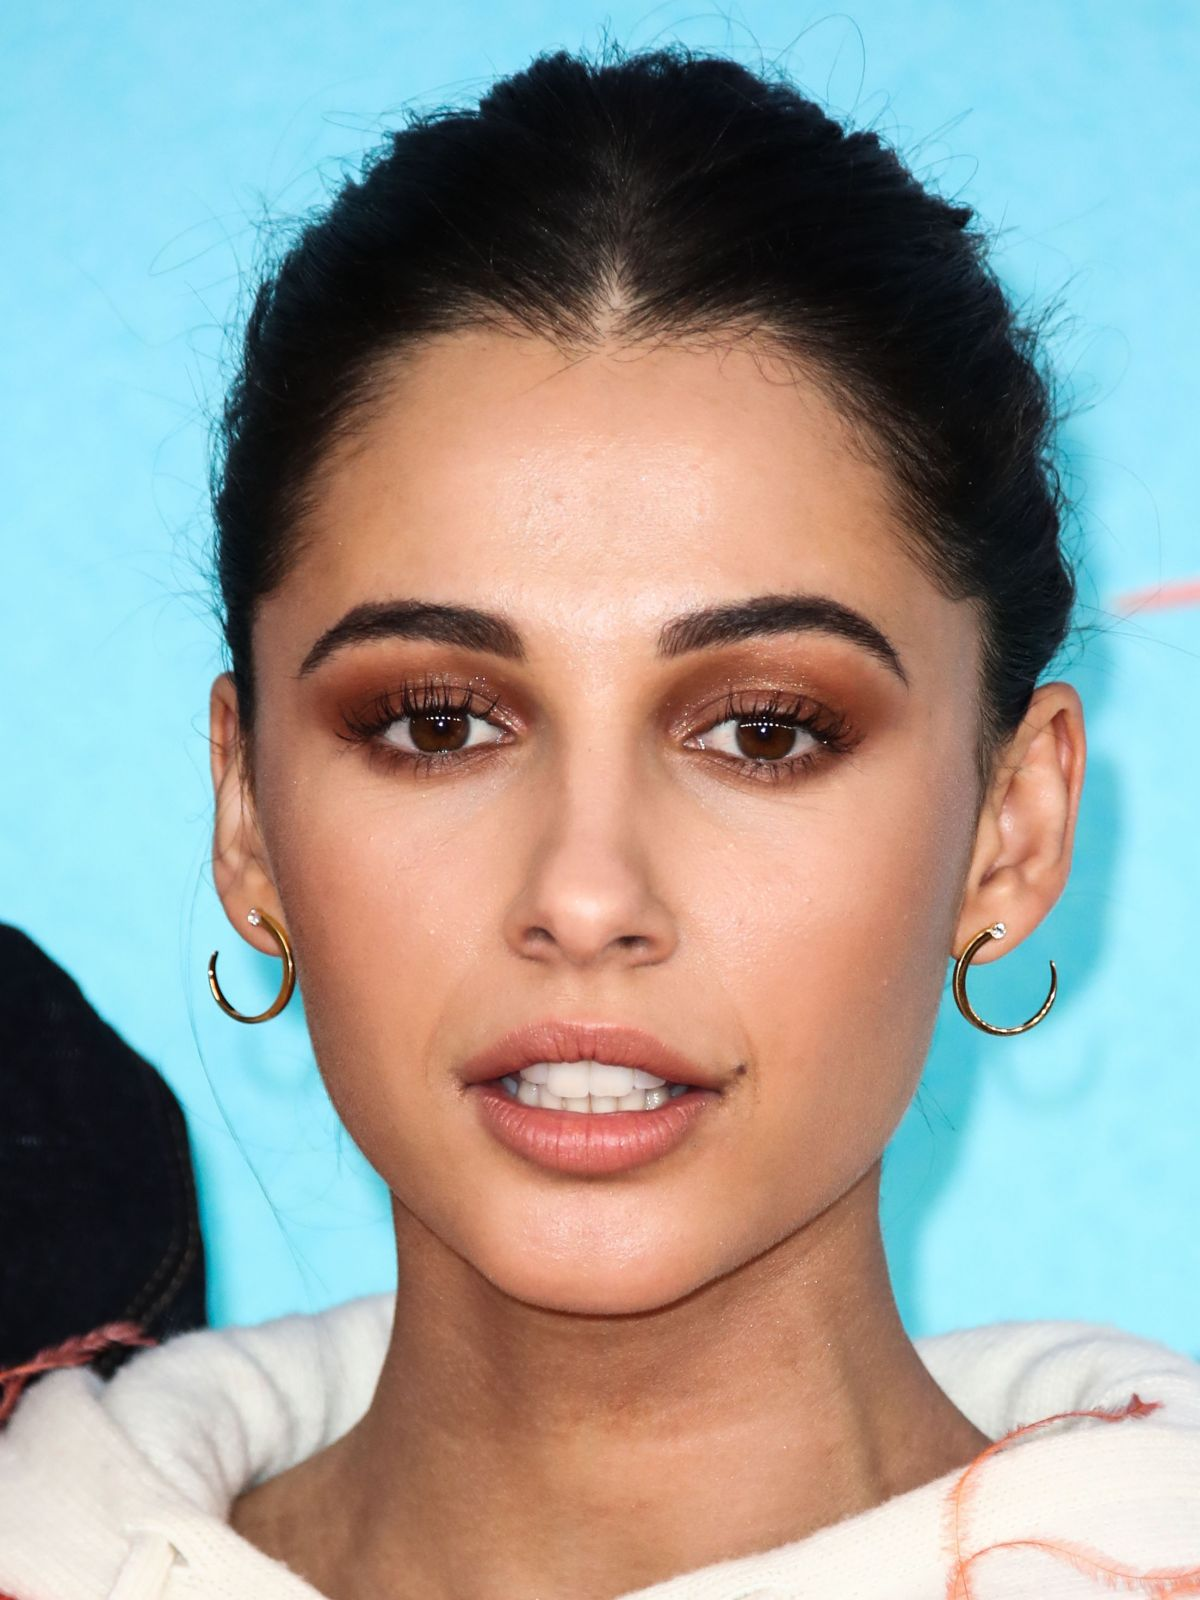 Wallpapers Of Aladdin Hottest Actress Naomi Scott At Nickelodeon Kids Choice Awards 2019 In Los Angeles Top 10 Ranker Scott rose to prominence for her performances in the science fiction drama series terra nova (2011). top 10 ranker